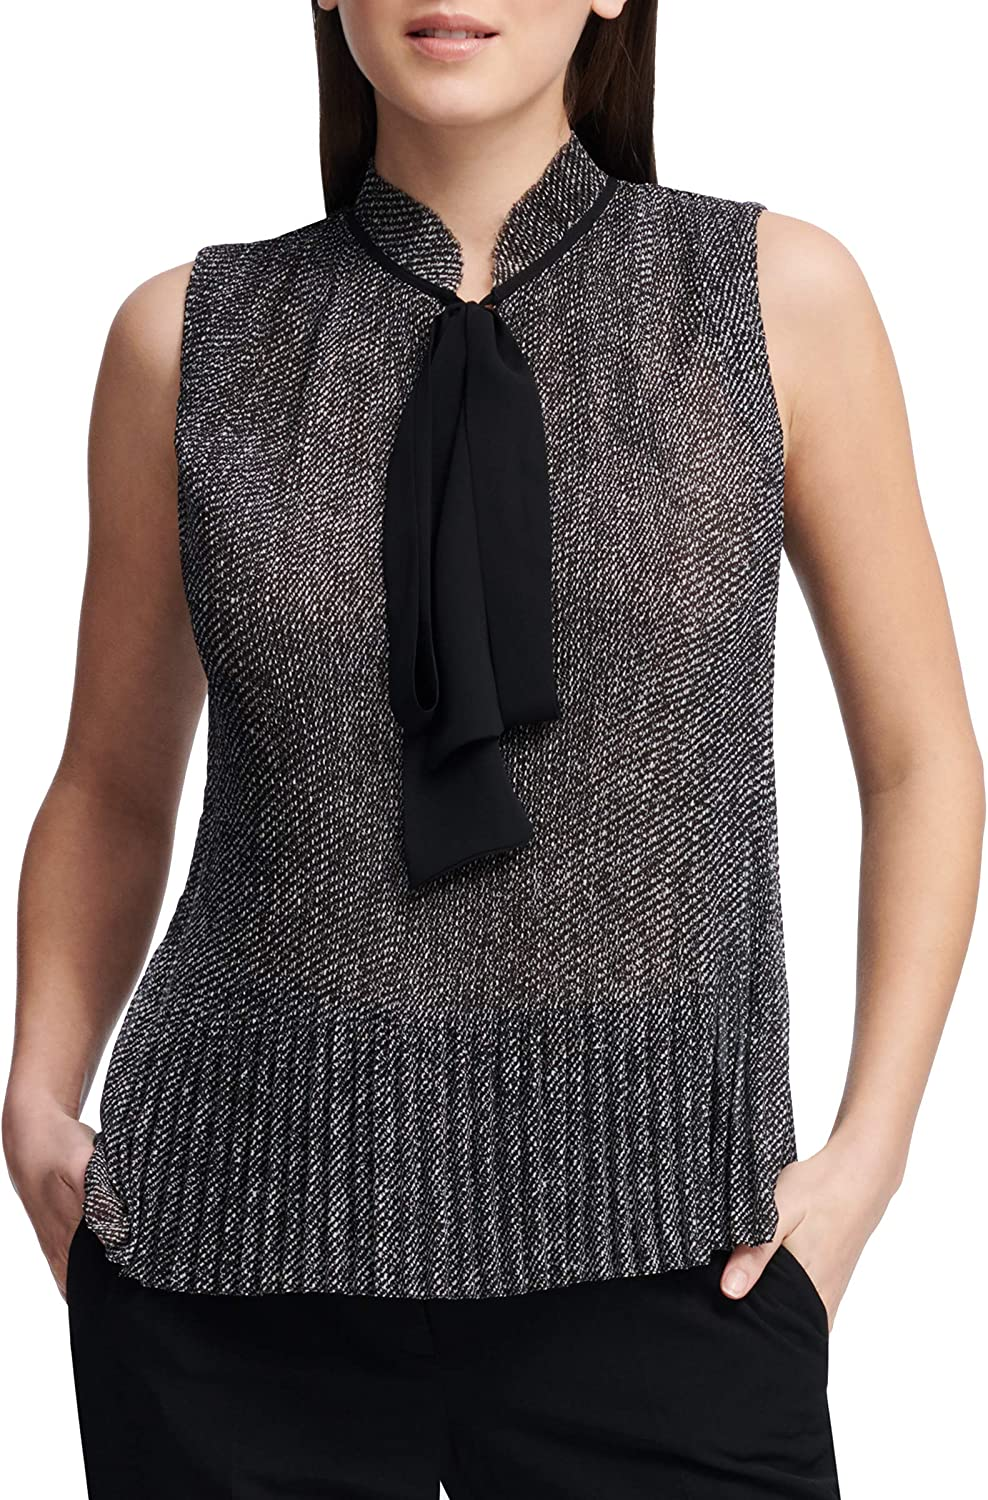 DKNY Women's Sleeveless Pleated Top with Tie Neck